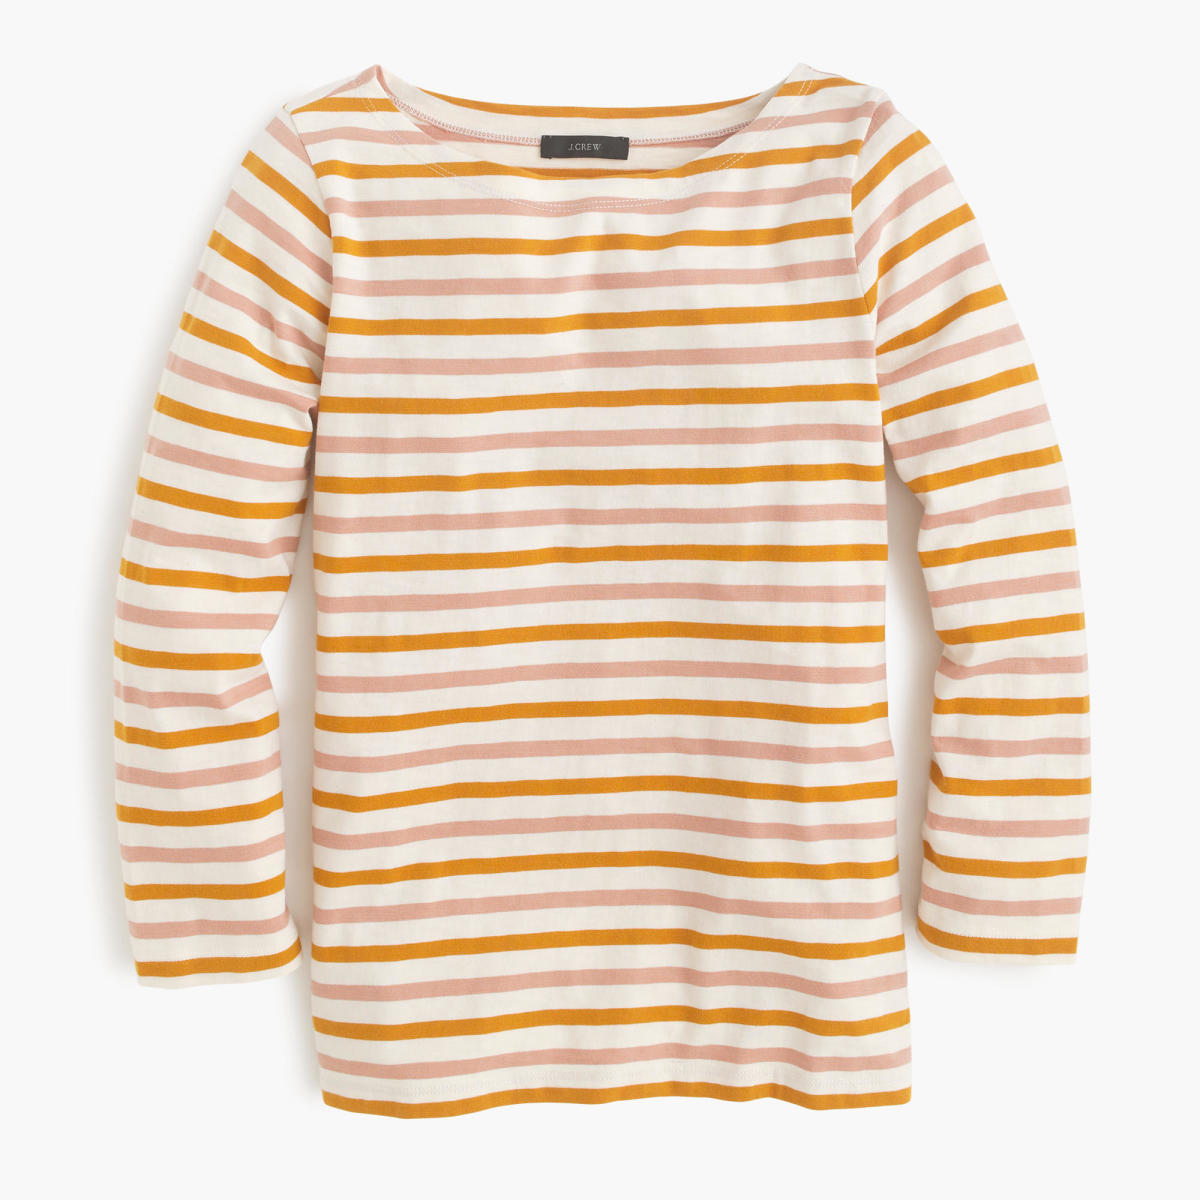 Reminds you of summer popsicles, doesn't it? J.Crew boatneck T-shirt in multicolor stripe, $39.50, available at J.Crew.